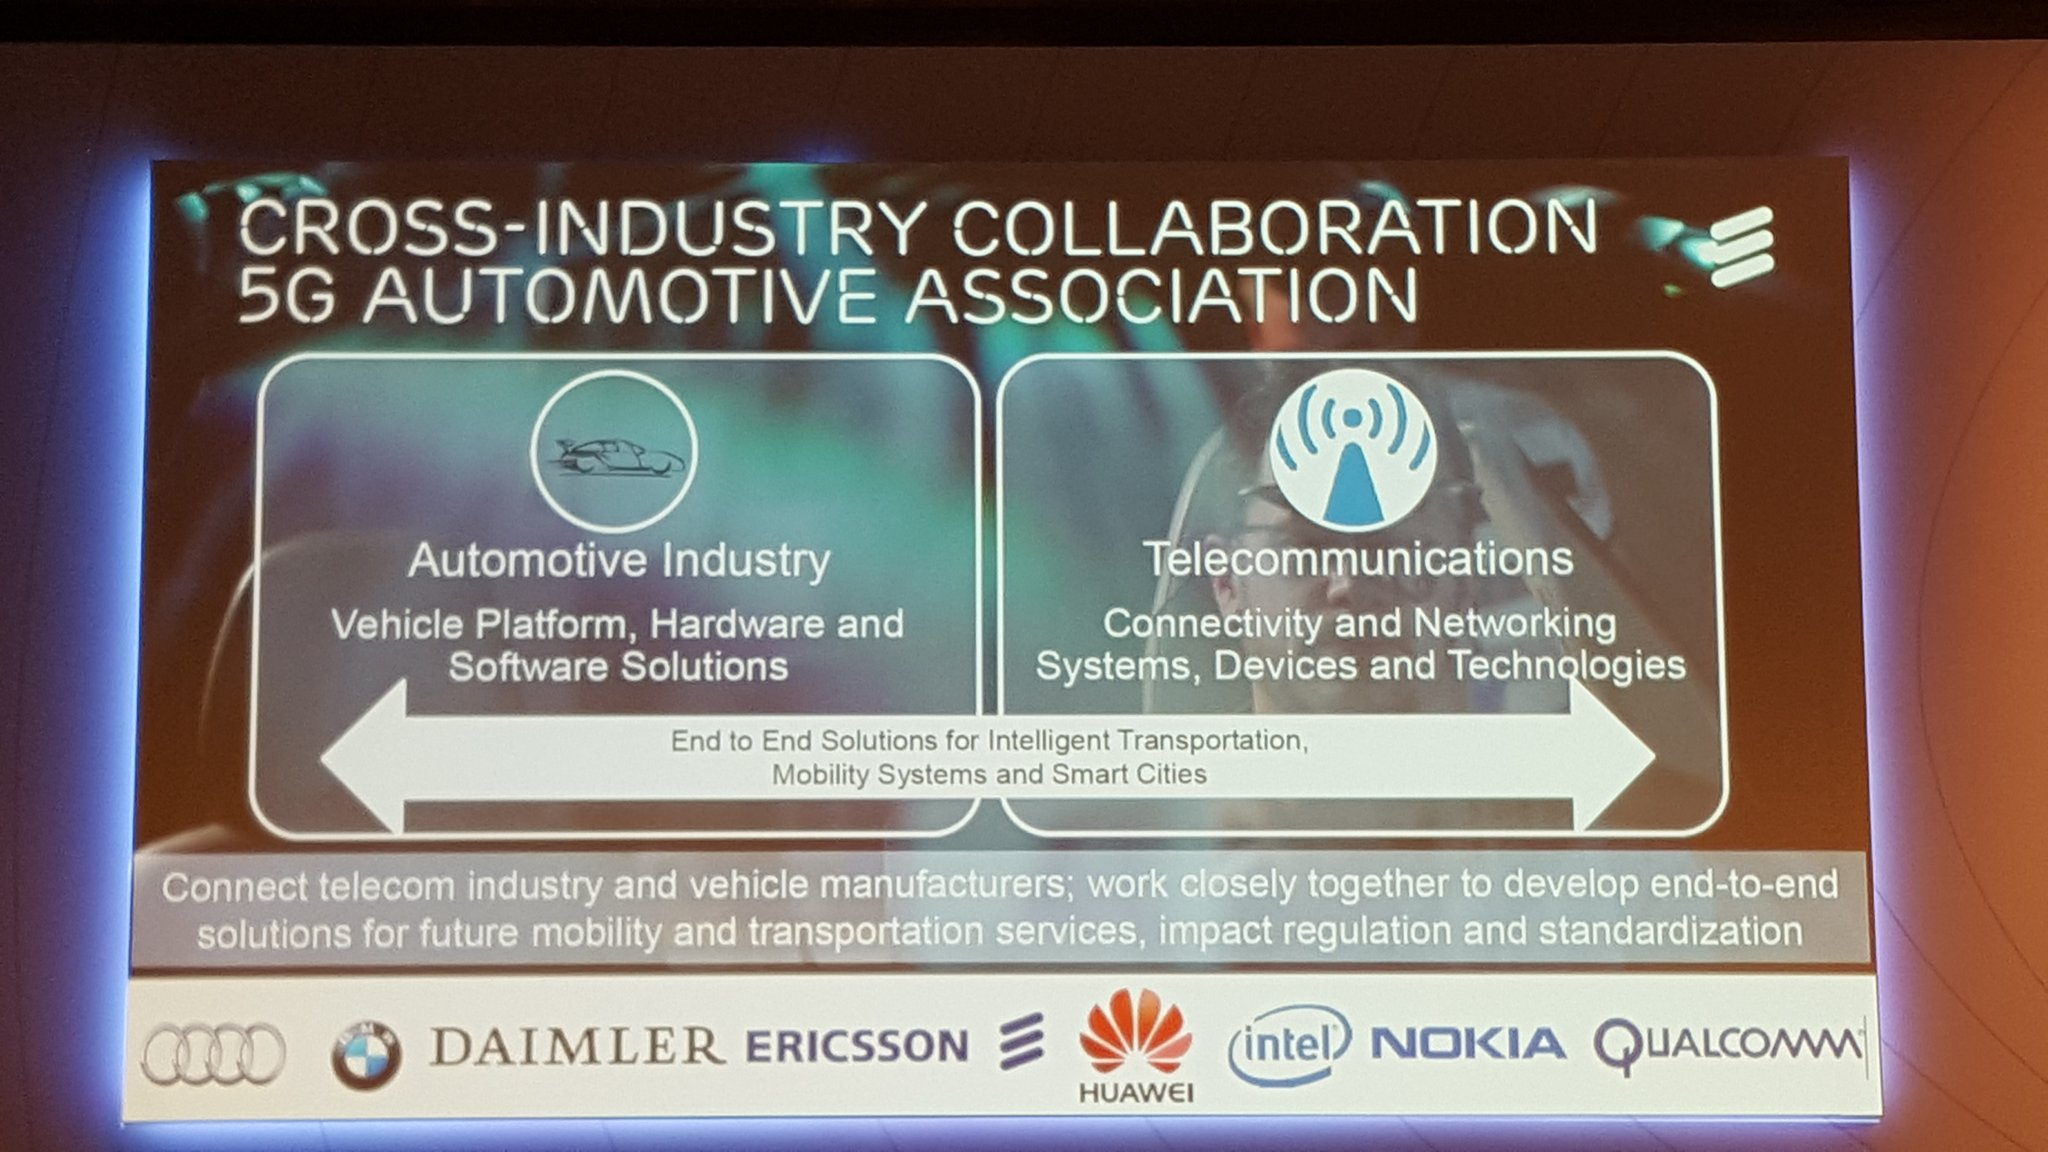 Cross industry collaboration is essential to enable new 5G verticals @NGMN_Alliance #5G #IoT #FMC https://t.co/56h3MqxV9s